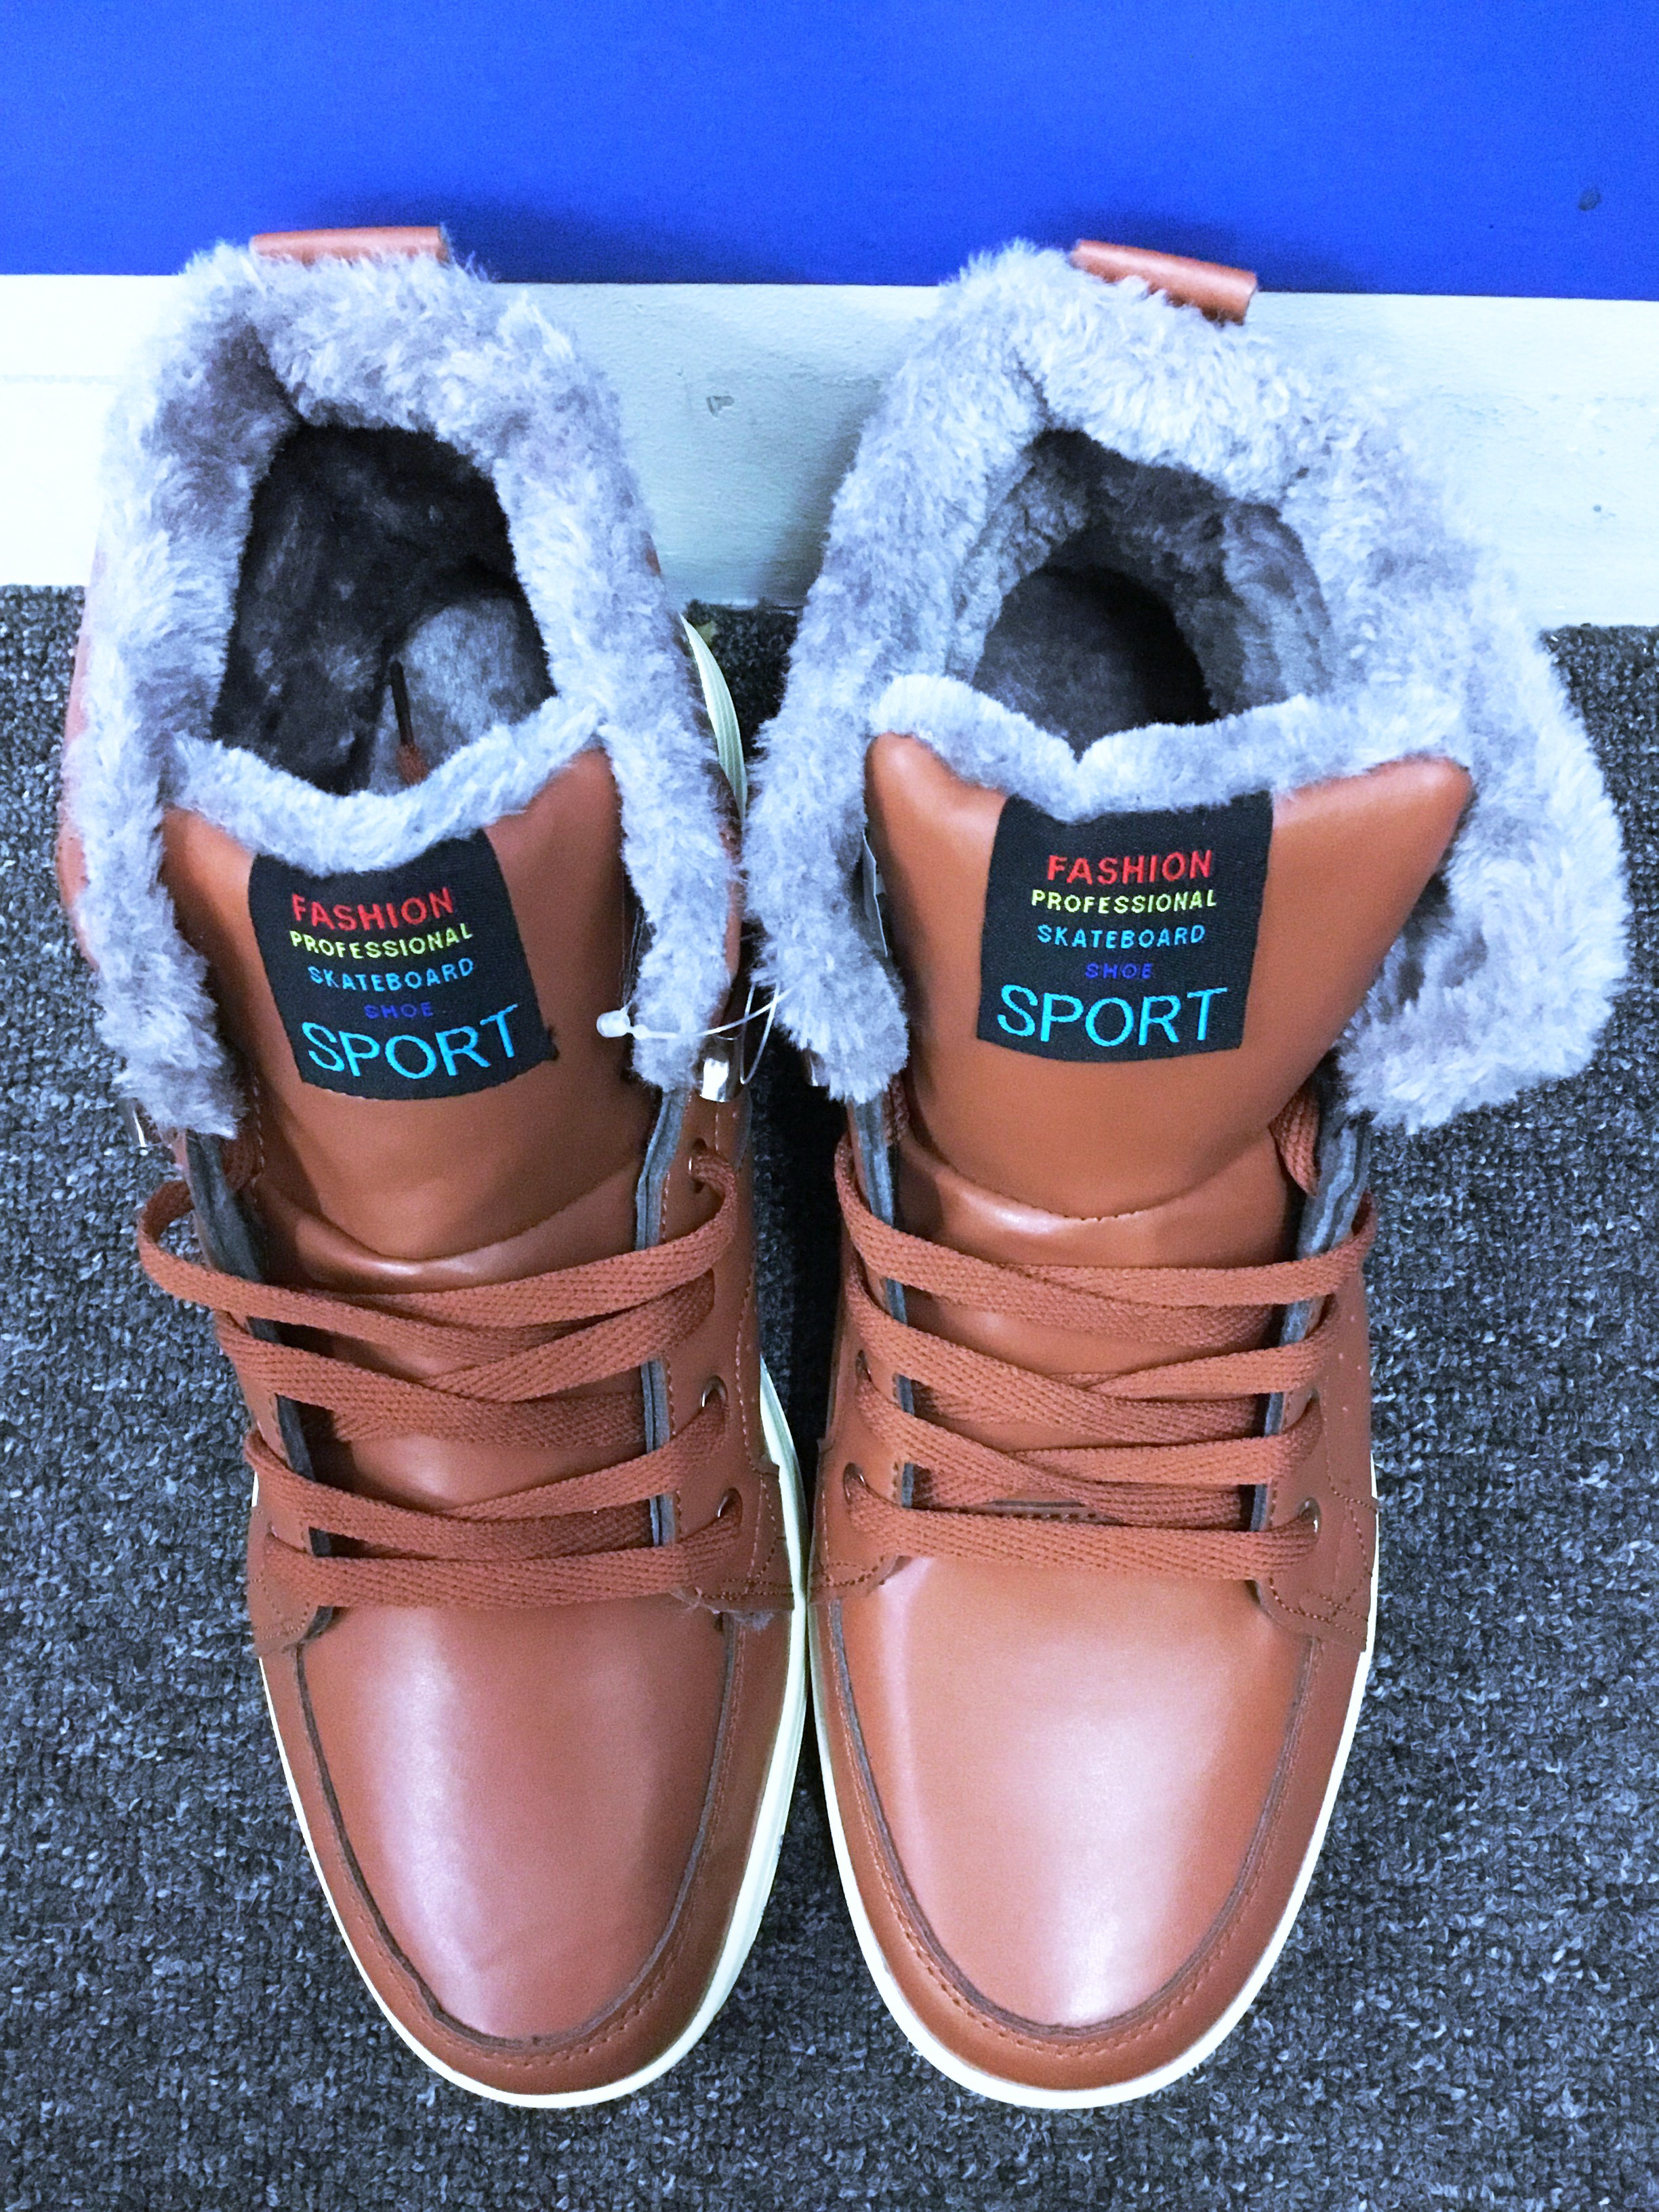 WINTER SHOES FASHION PROFESSIONALS